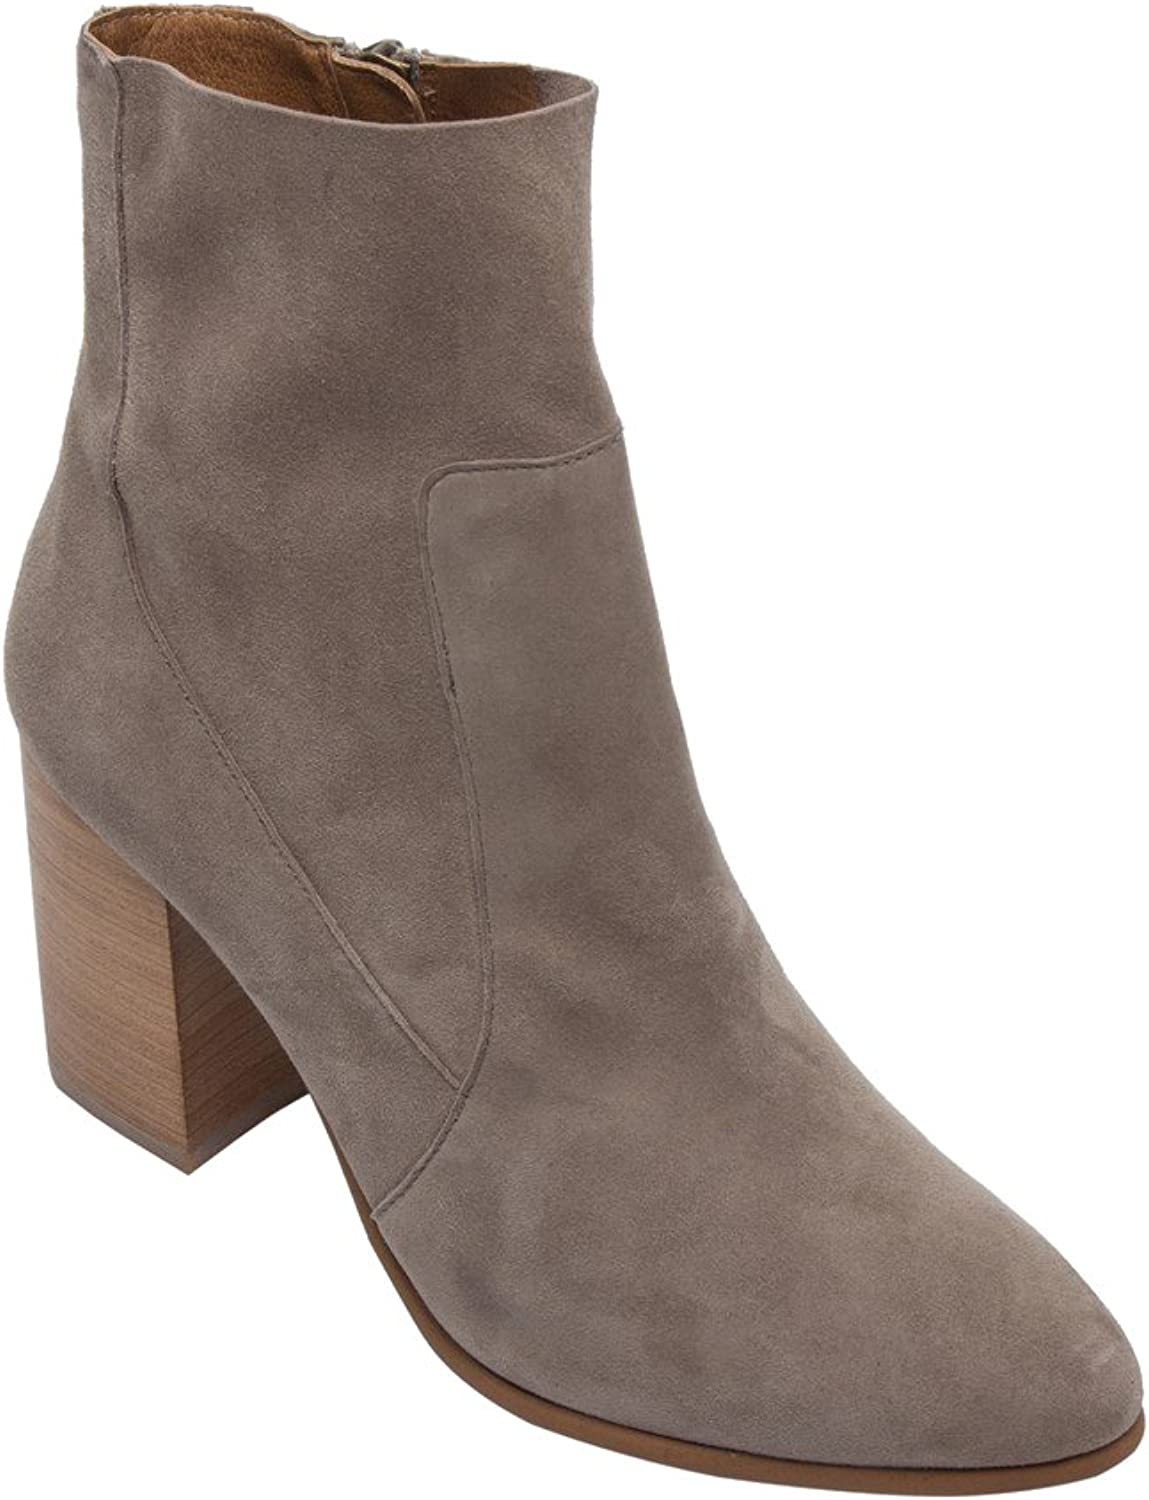 PIC PAY Becca - Women's Mid Height Ankle Boot - Suede Leather Stacked Block Heel Zipper Bootie Grey Suede 5M